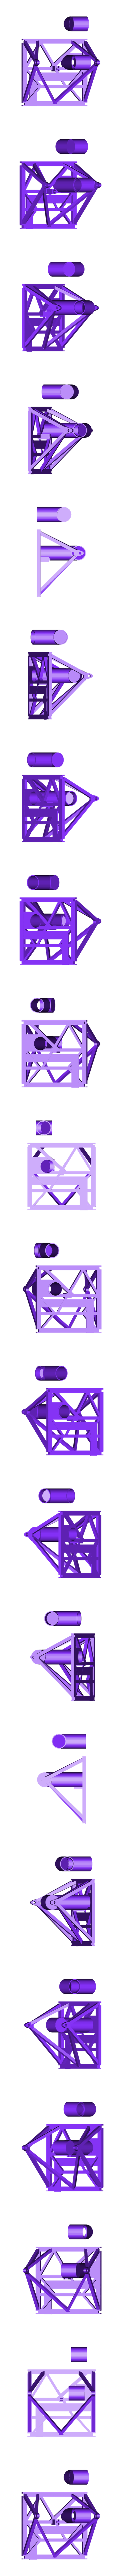 BWG-Upper-Alidade.stl Download free STL file BWG Deep Space Station Antenna • 3D printable template, spac3D